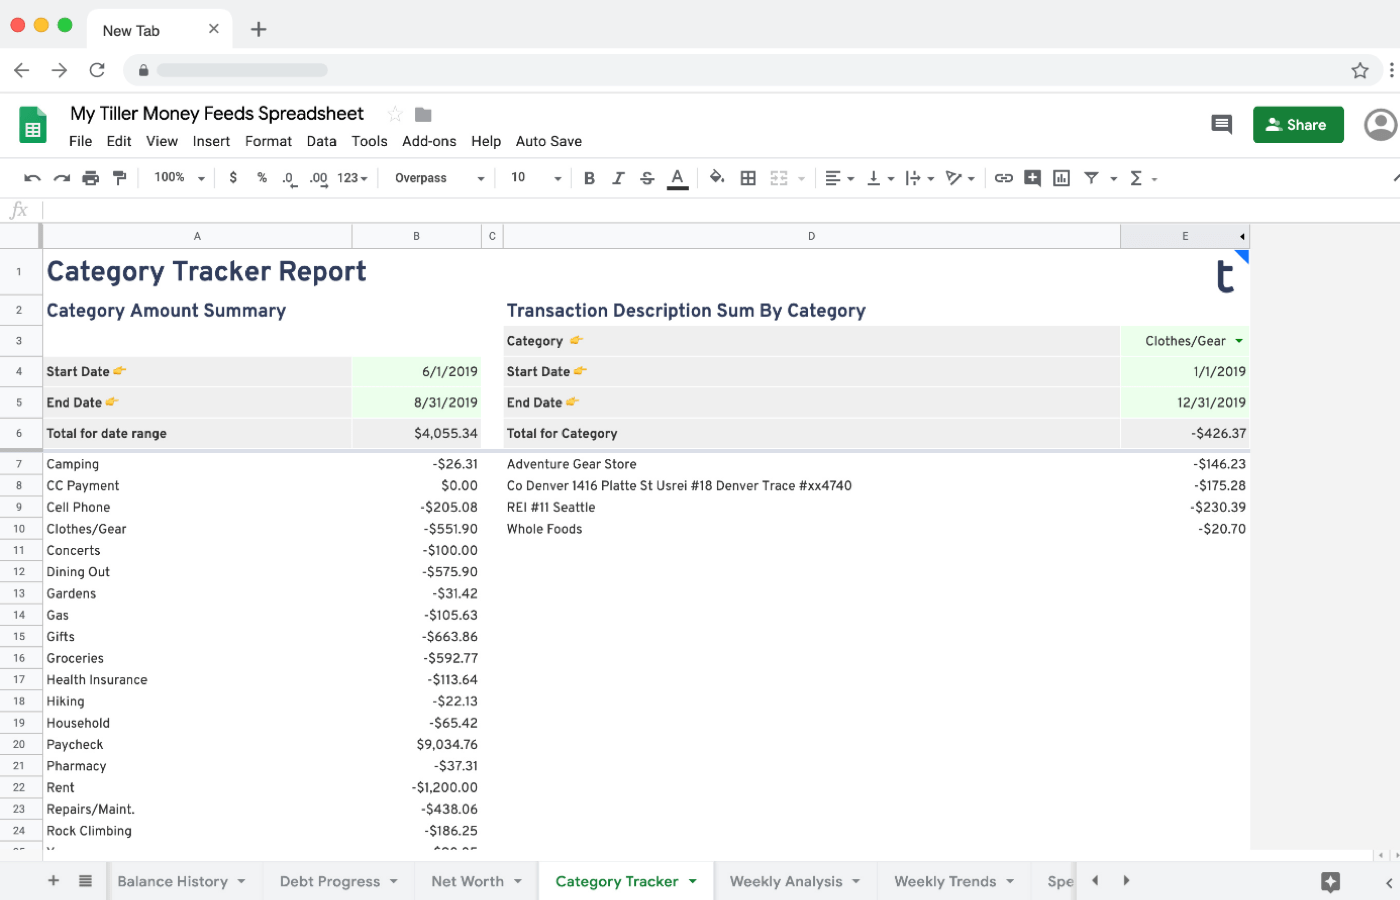 Category Tracker Report from Tiller Labs